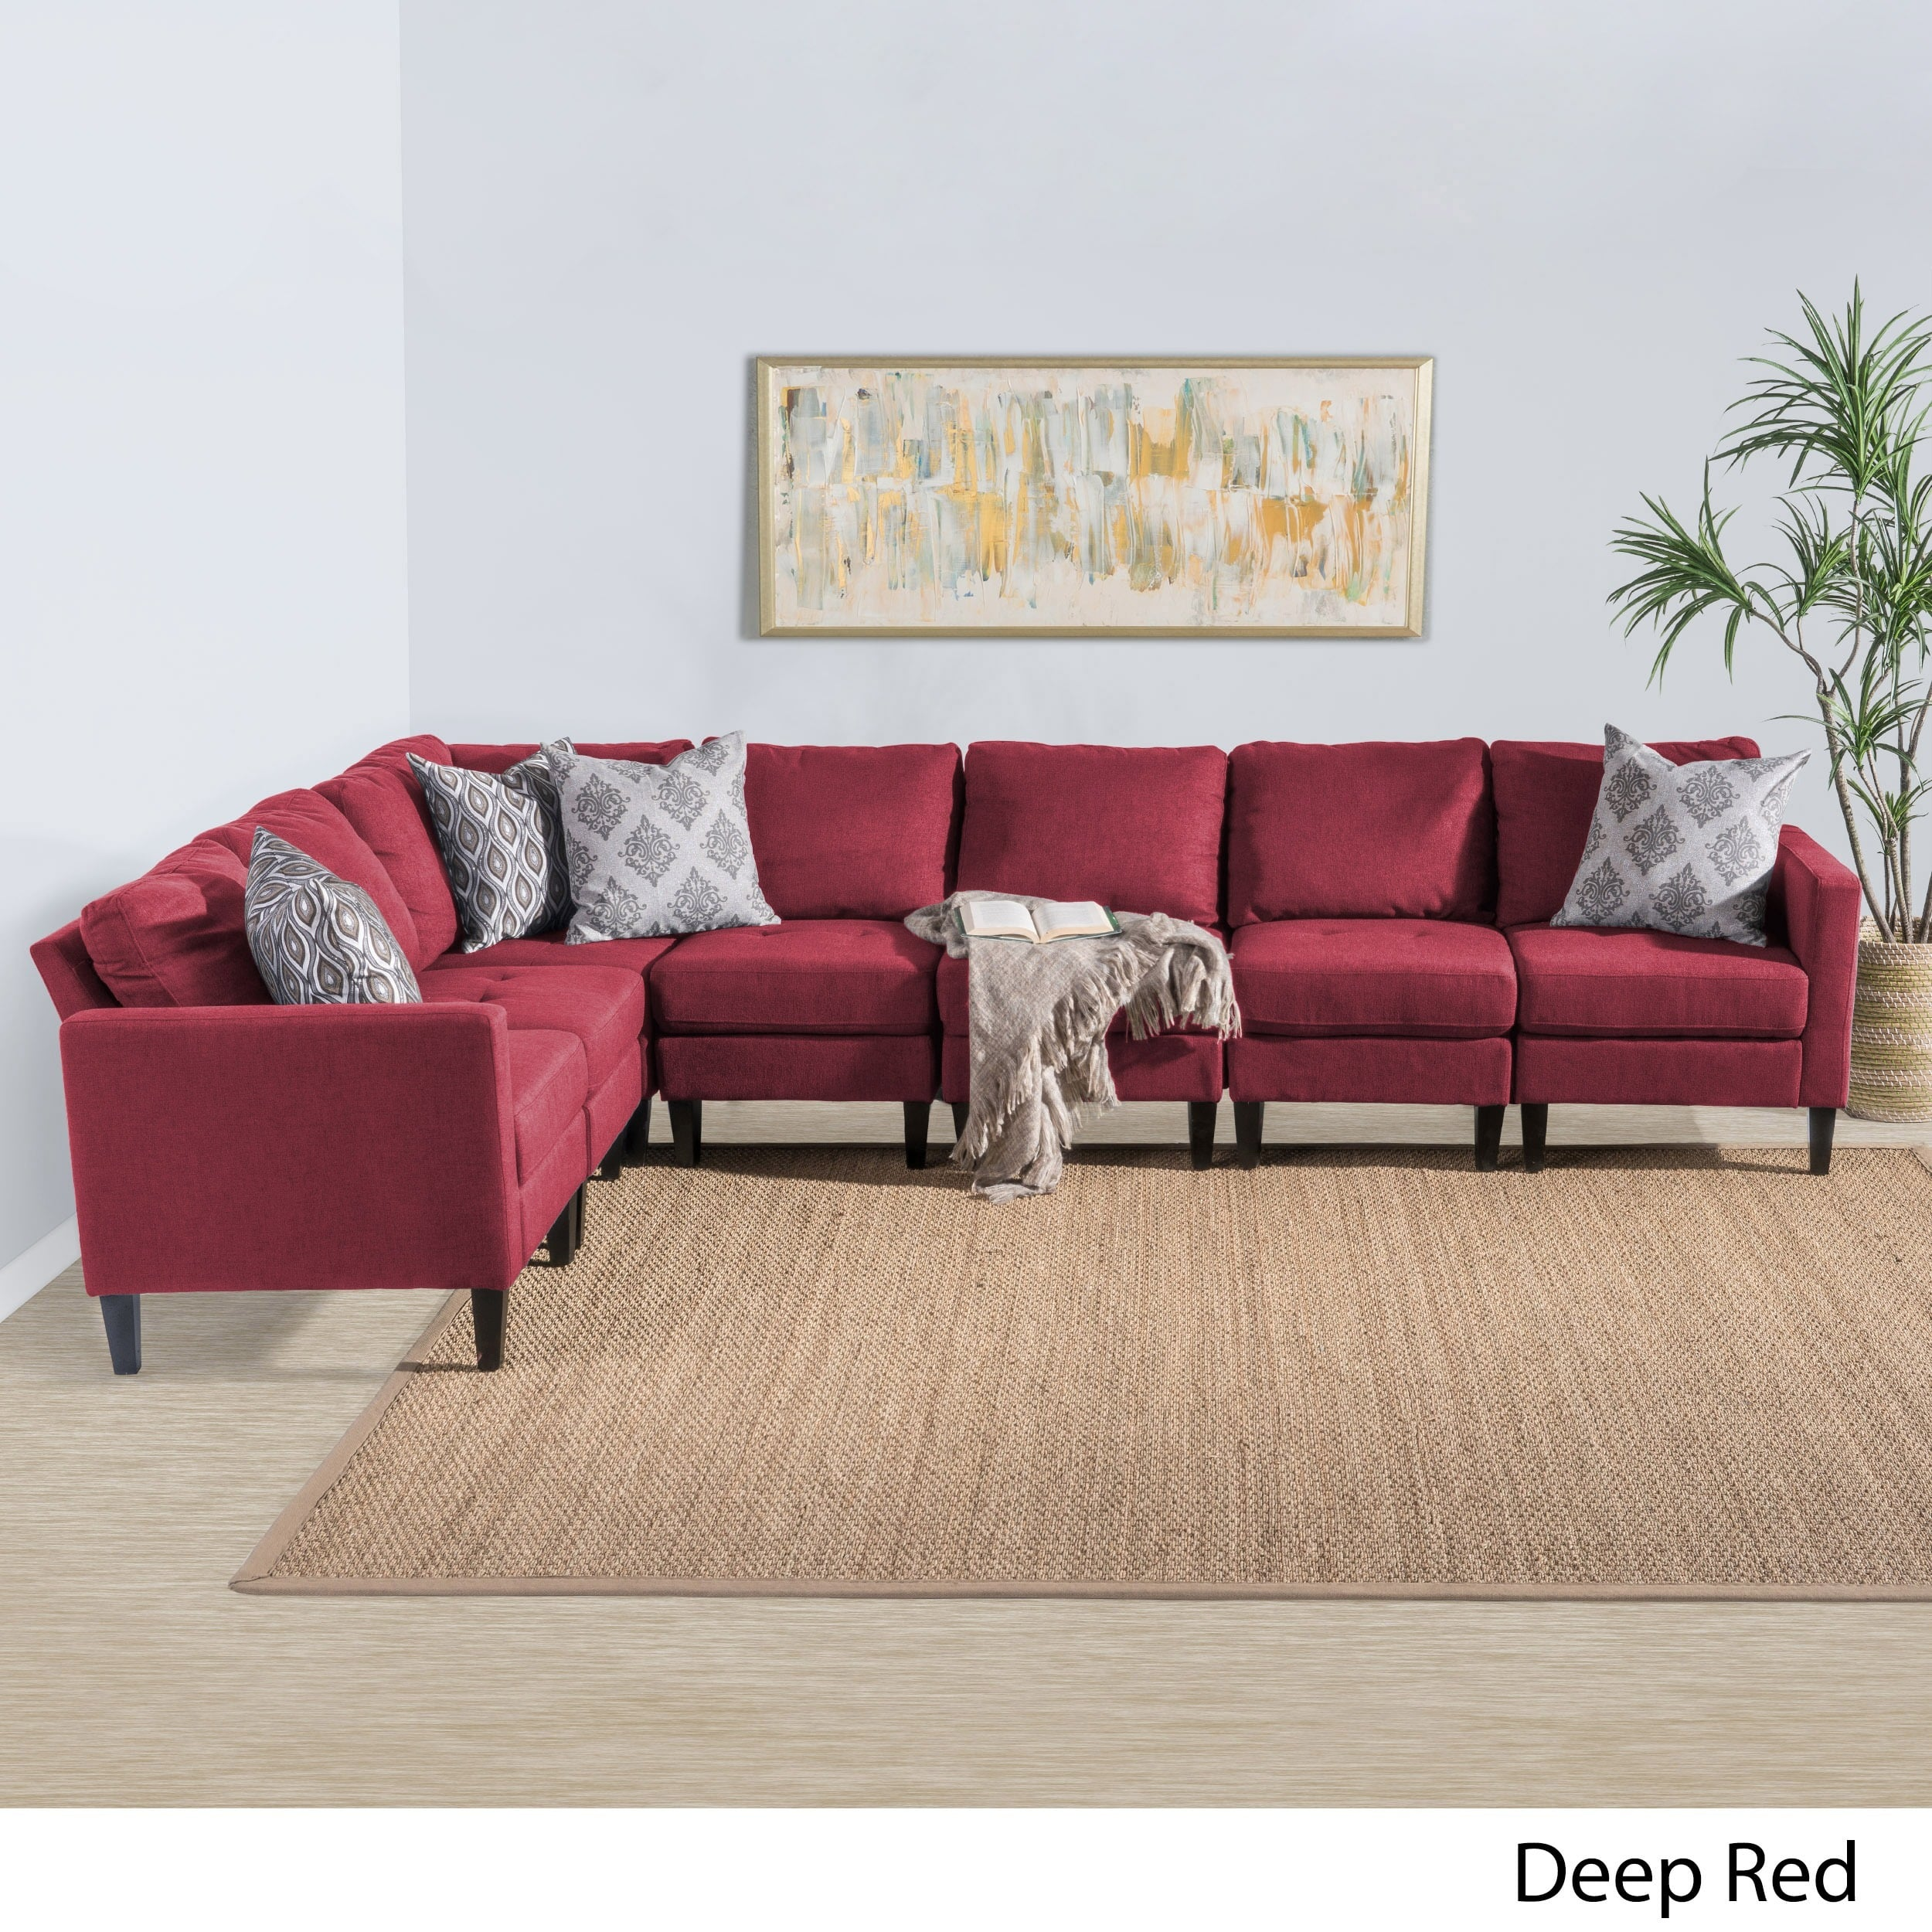 Christopher Knight Home Zahra 7-piece Fabric Sectional Sofa Set by